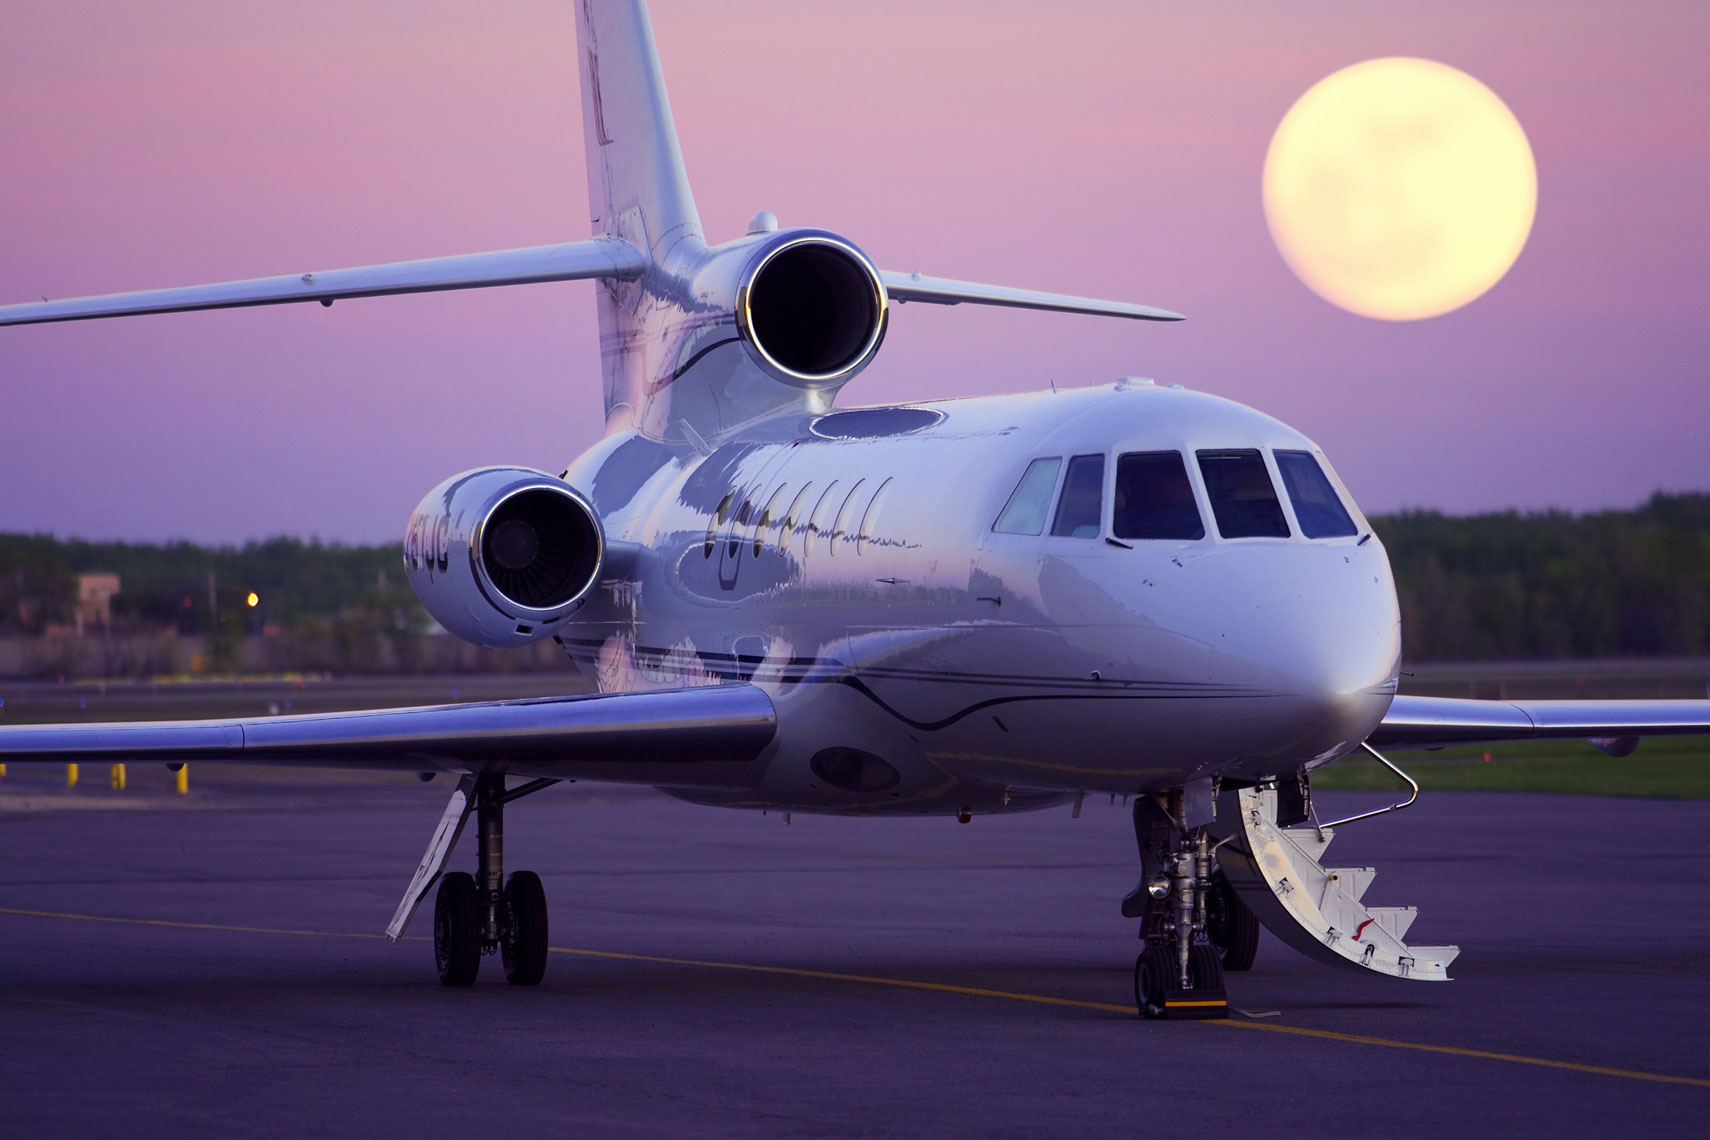 JetChoice/private jet/tarmack/moon/twighlight/aviation photography